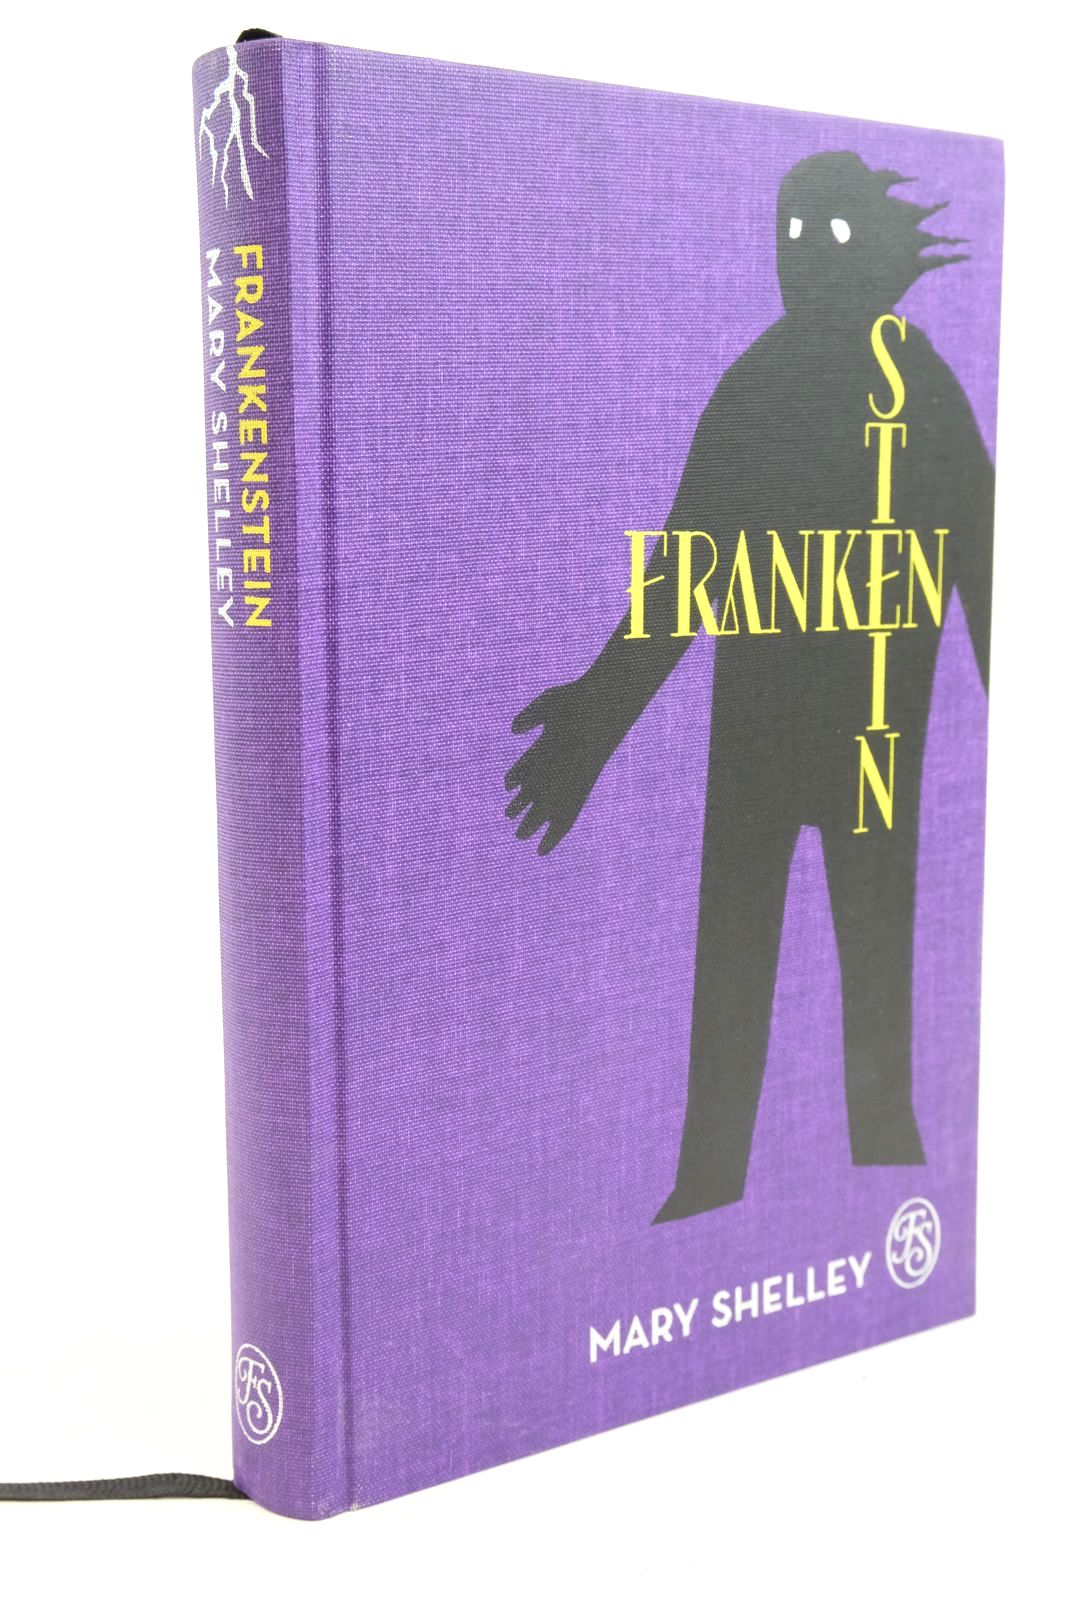 Photo of FRANKENSTEIN OR THE MODERN PROMETHEUS written by Shelley, Mary illustrated by Brockway, Harry published by Folio Society (STOCK CODE: 1320906)  for sale by Stella & Rose's Books